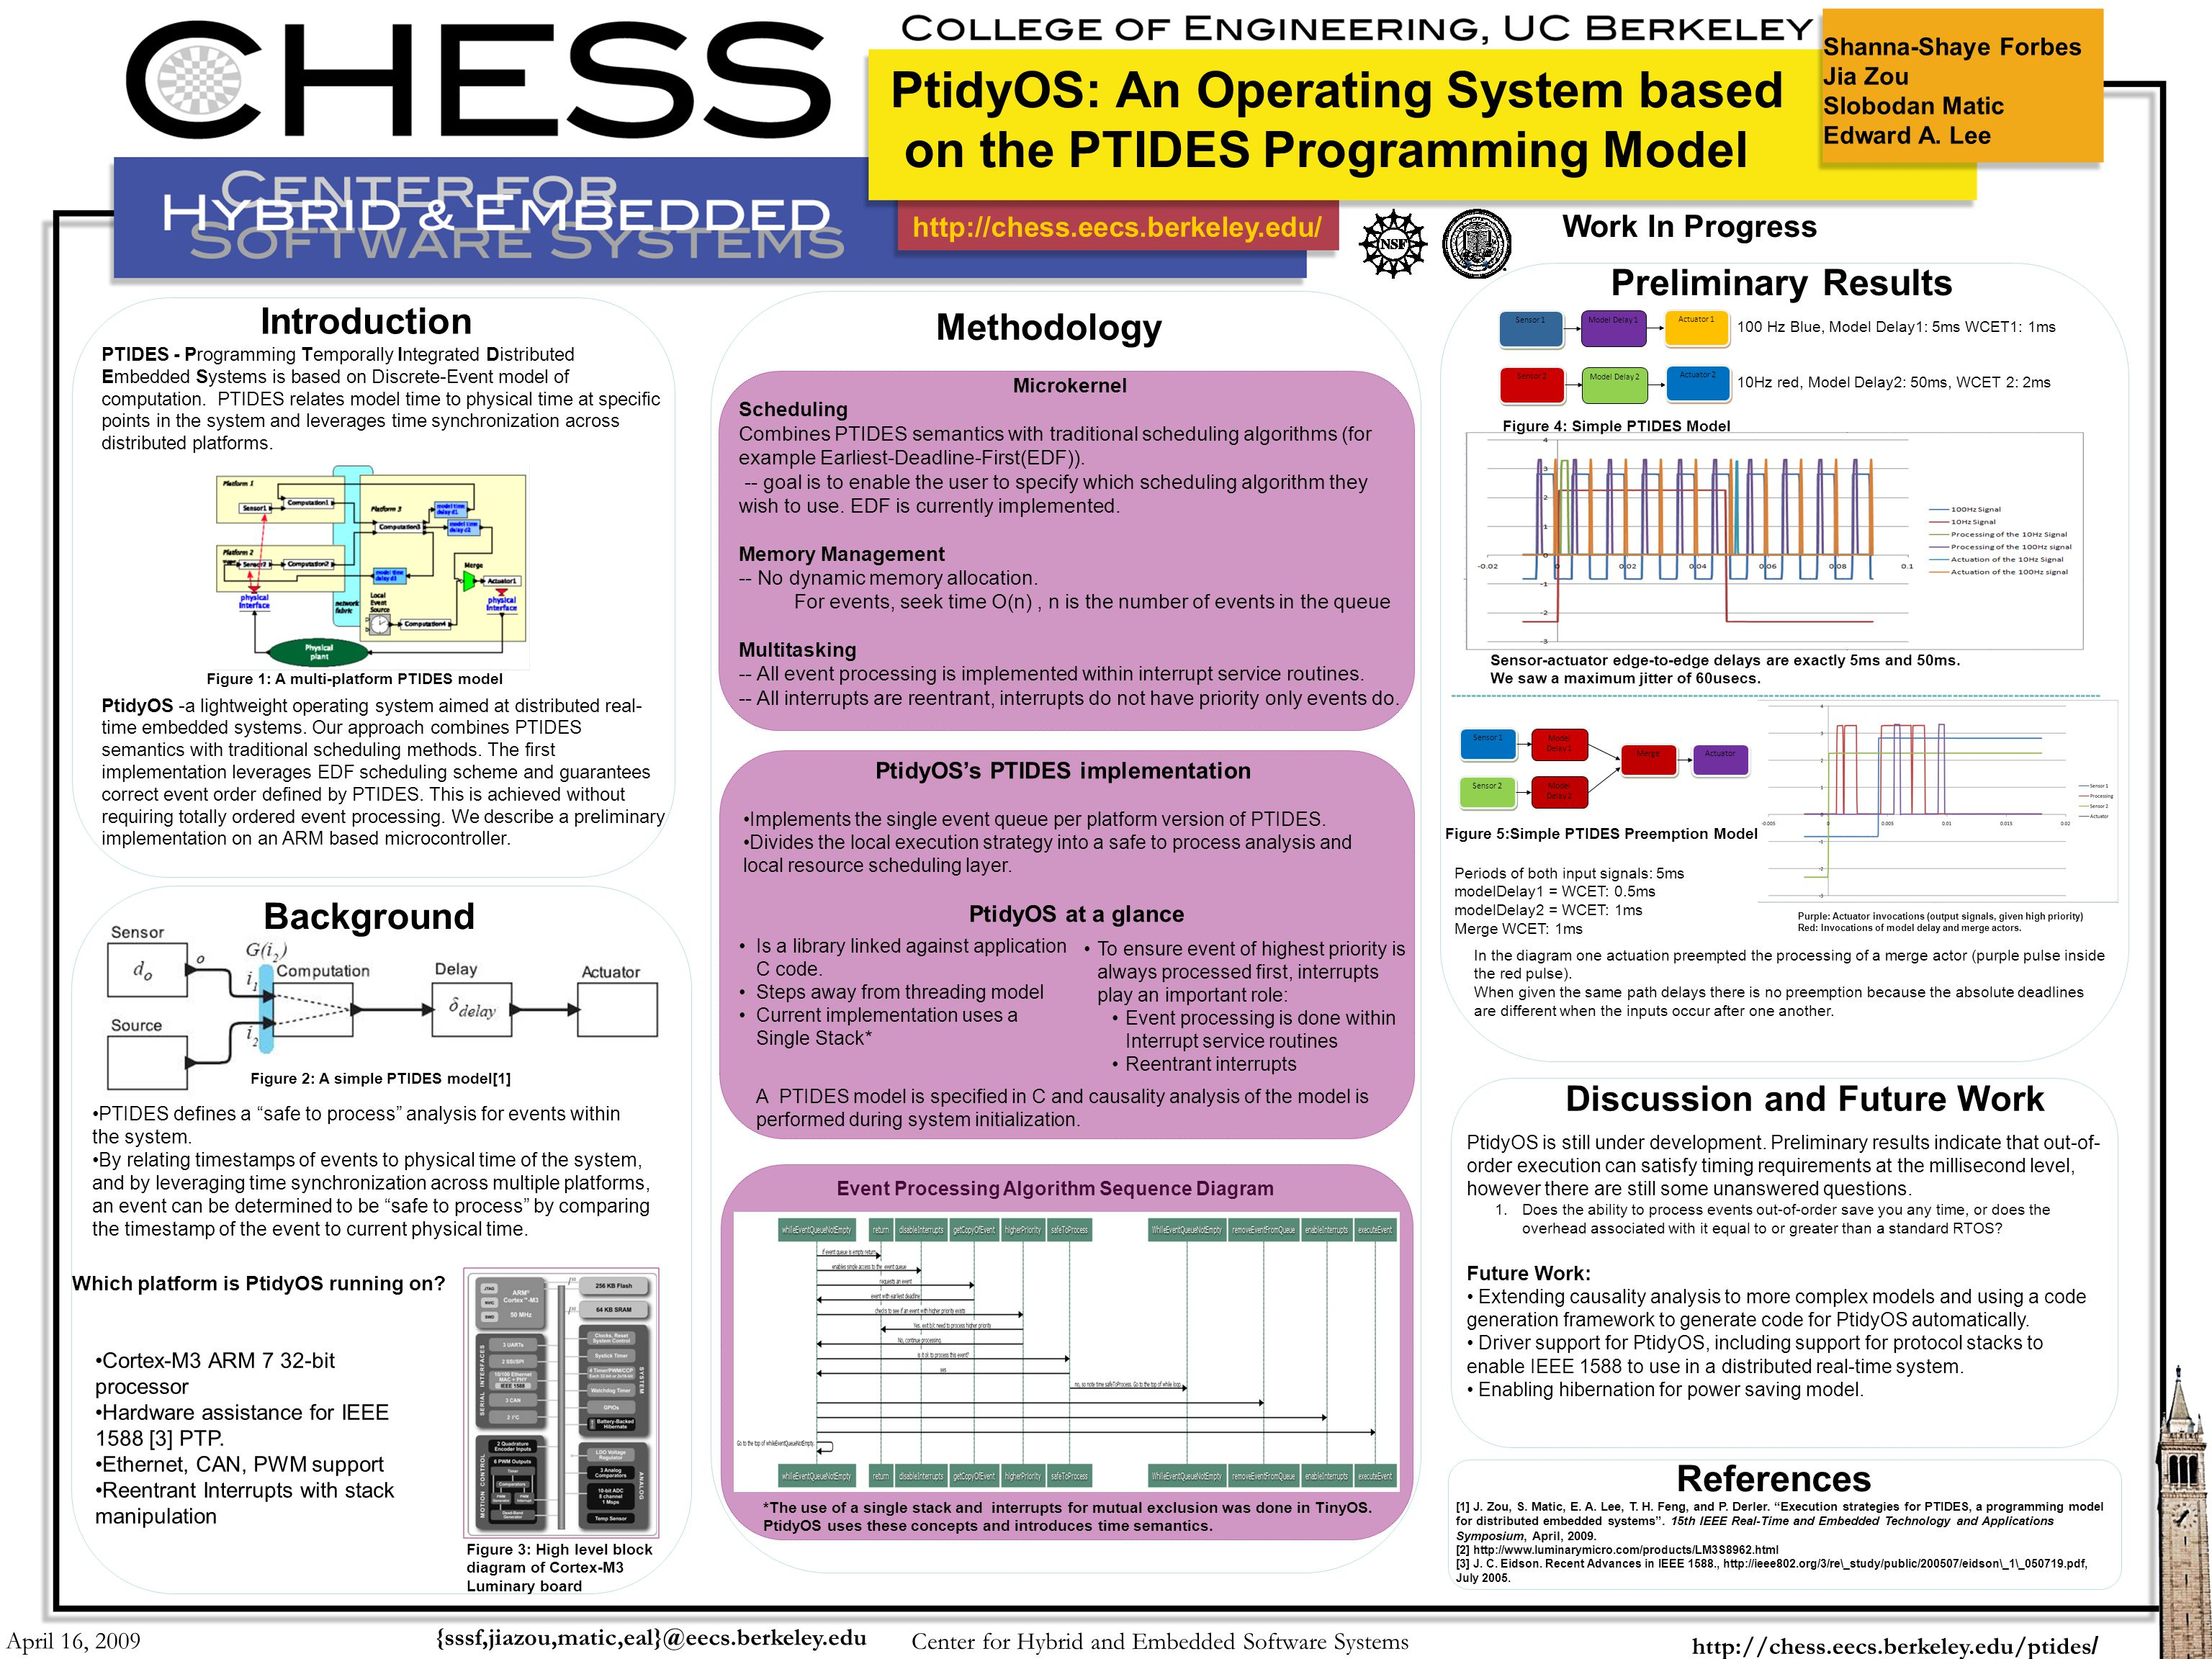 April 16, 2009 Center for Hybrid and Embedded Software Systems PtidyOS: An Operating System based on the PTIDES Programming Model sdfdsfsdfdsfdsfds Methodology Preliminary Results Discussion and Future Work References Shanna-Shaye Forbes Jia Zou Slobodan Matic Edward A.